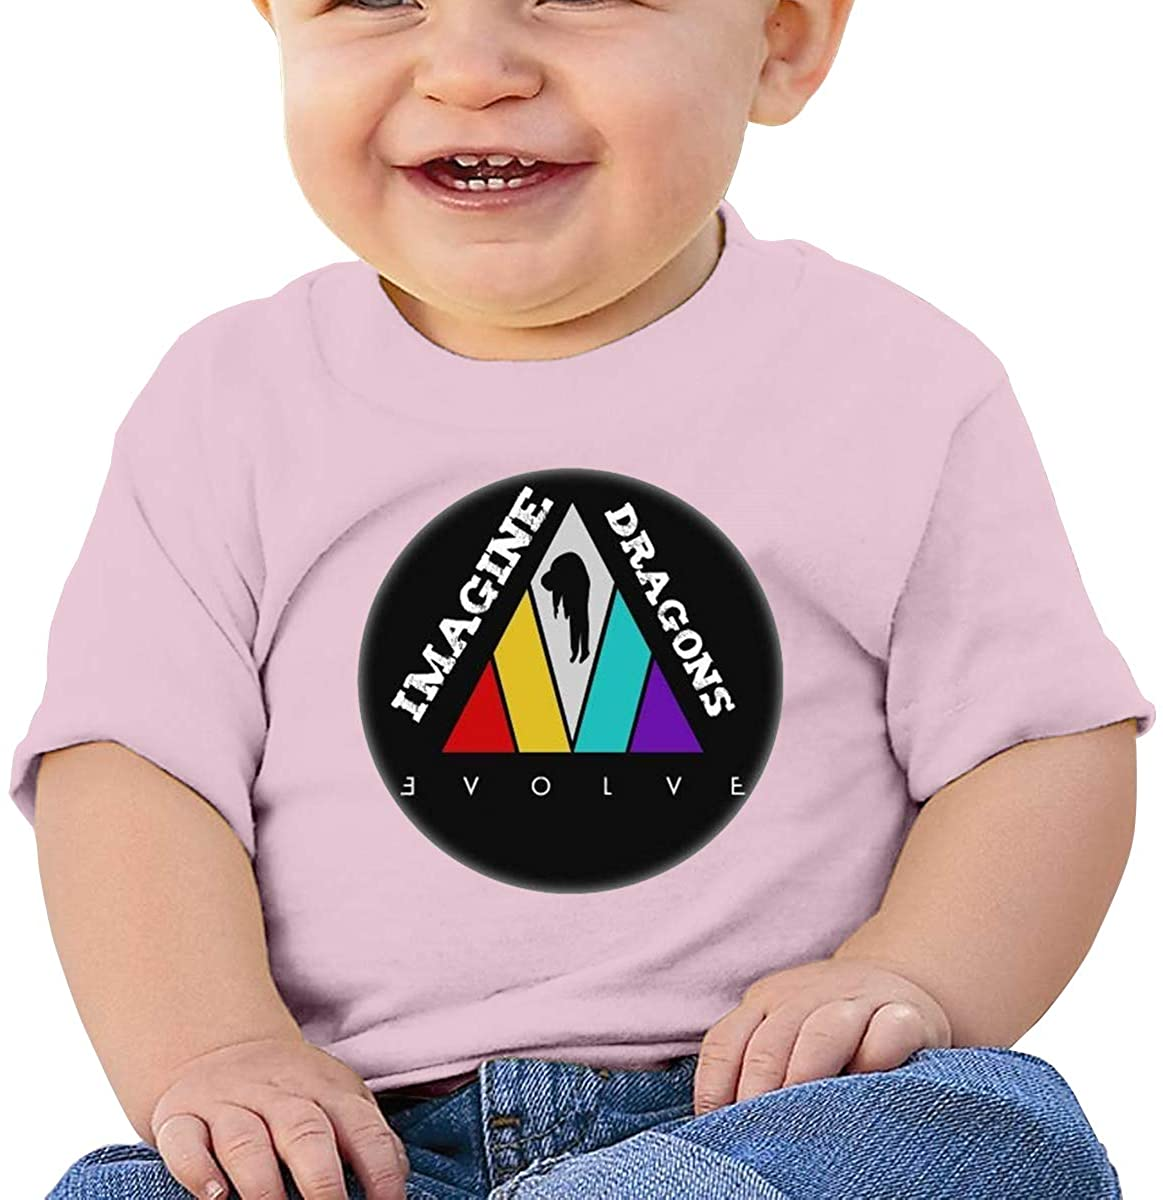 6-24 Months Boy and Girl Baby Short Sleeve T-Shirt Imagine Dragons Elegant and Simple Design Pink